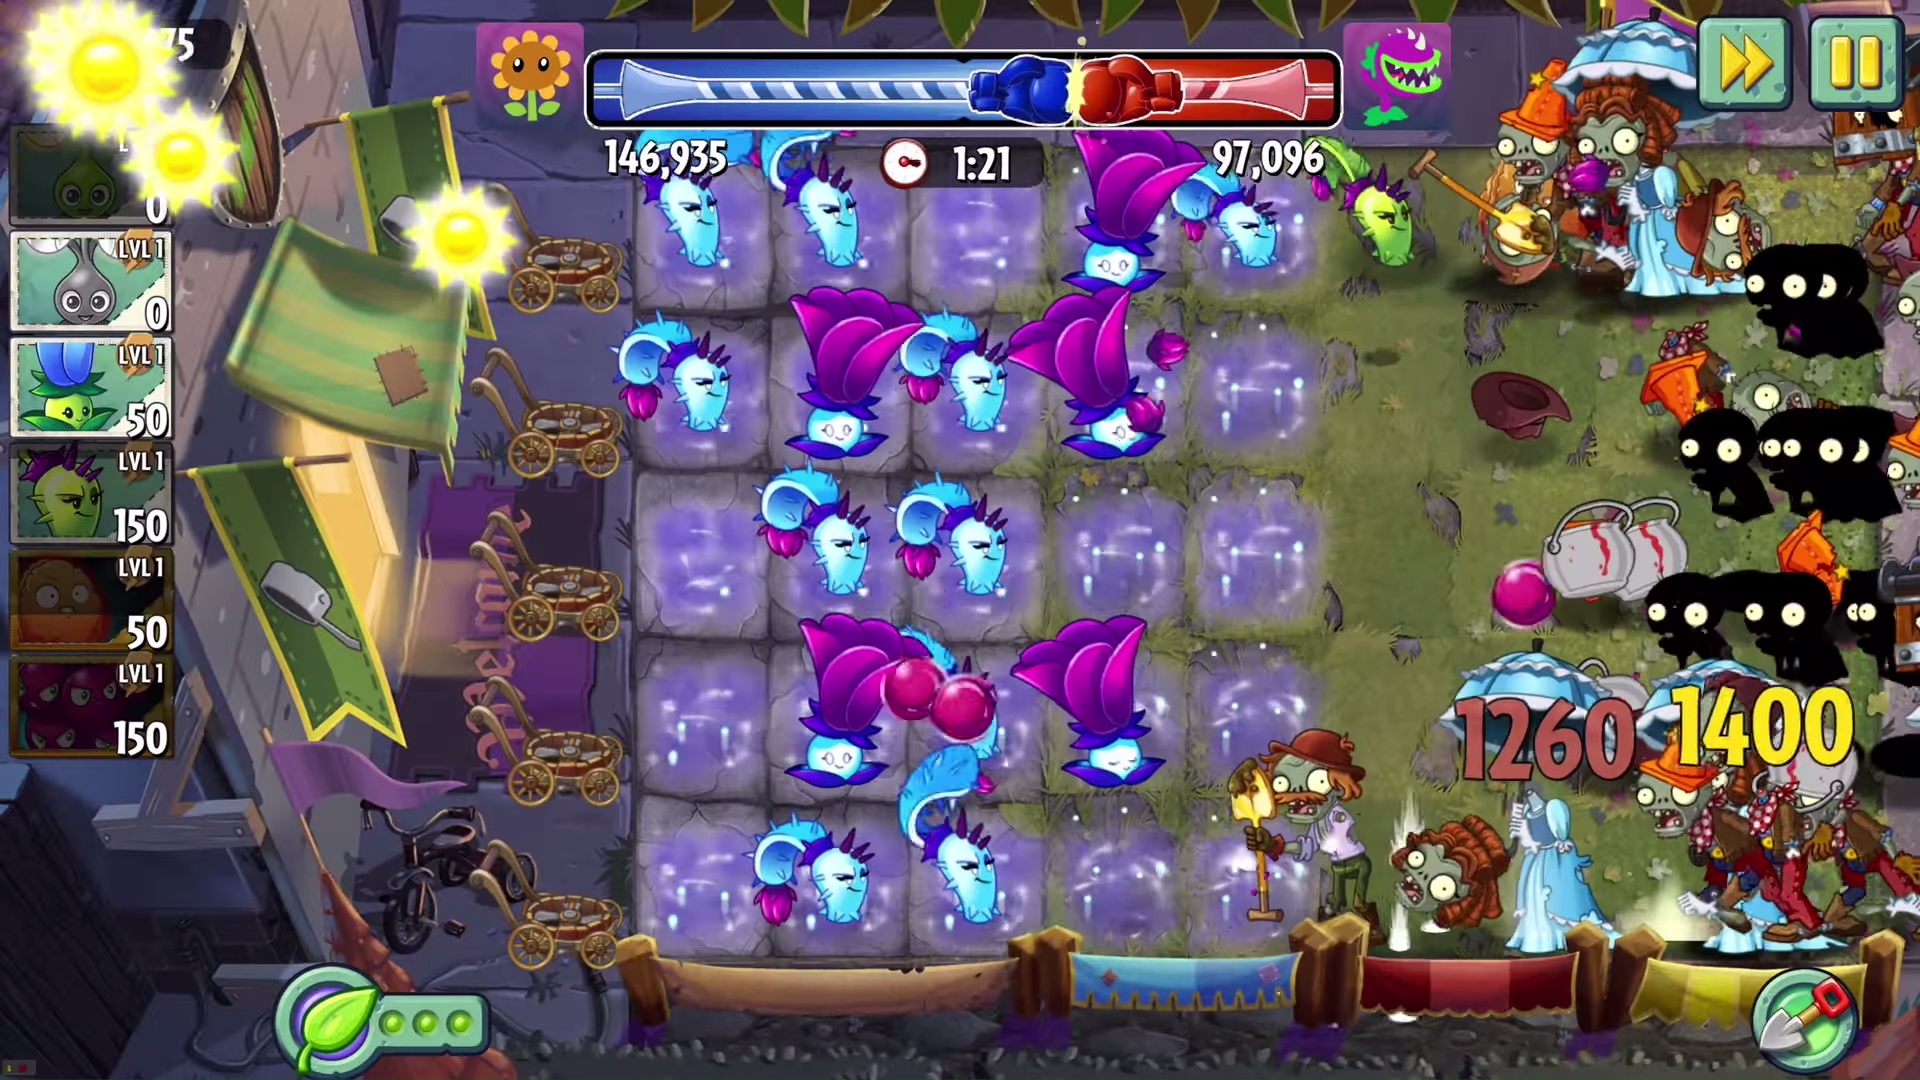 Plants vs zombies 2 introduces pvp battlez shacknews the new battlez mode introduces asynchronous pvp which sees players look to see who can take out zombie hordes the fastest players earn more points voltagebd Choice Image